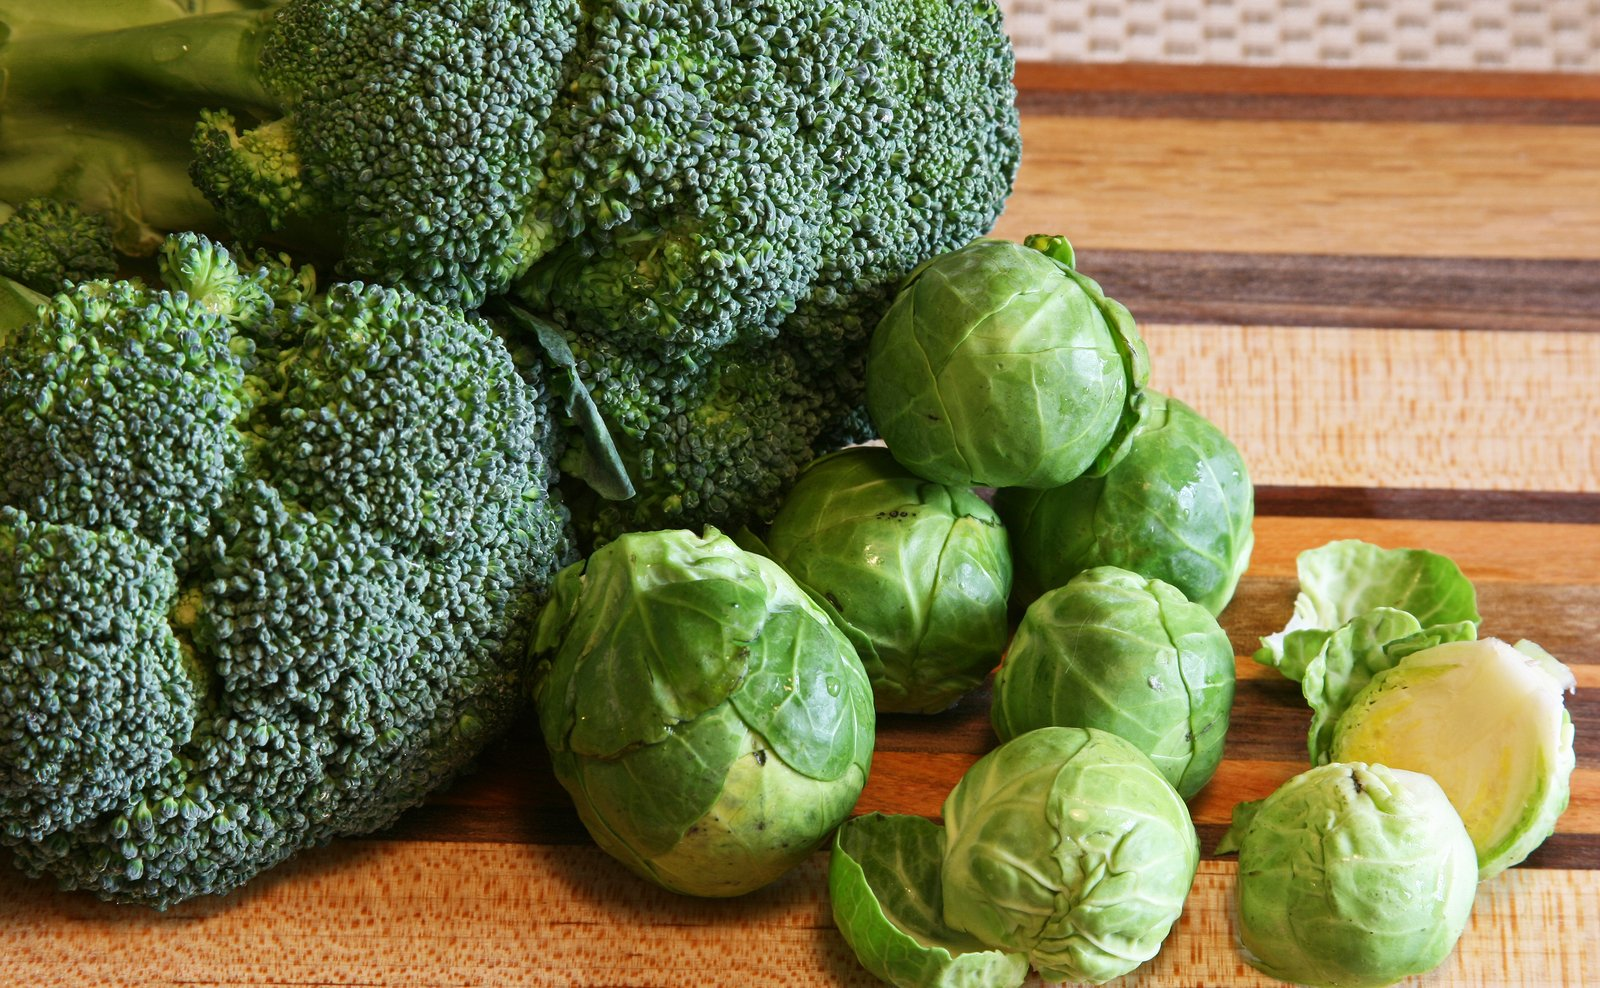 Broccoli-And-Brussel